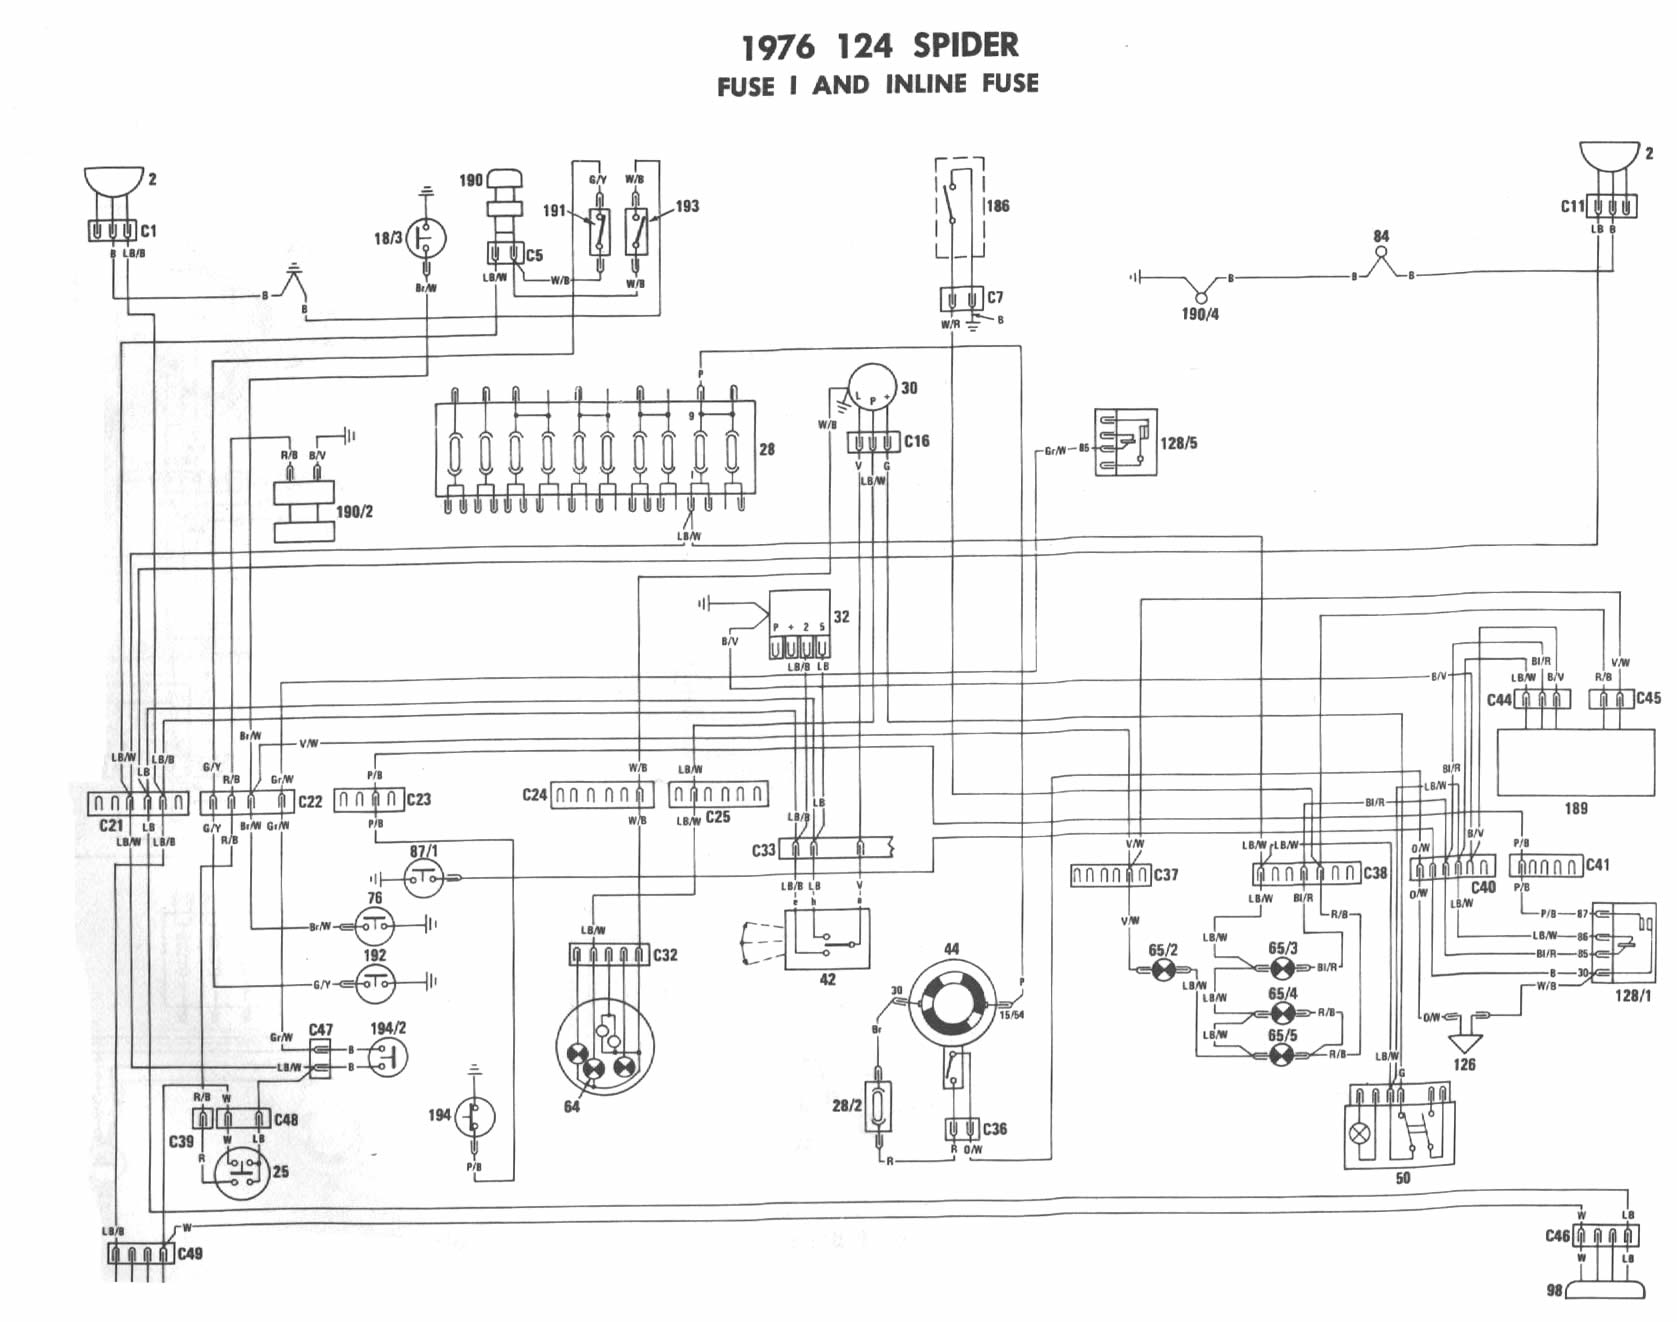 hight resolution of nissan 240sx alternator diagram free download wiring diagram 1994 nissan 240sx fuse diagram under hood schema